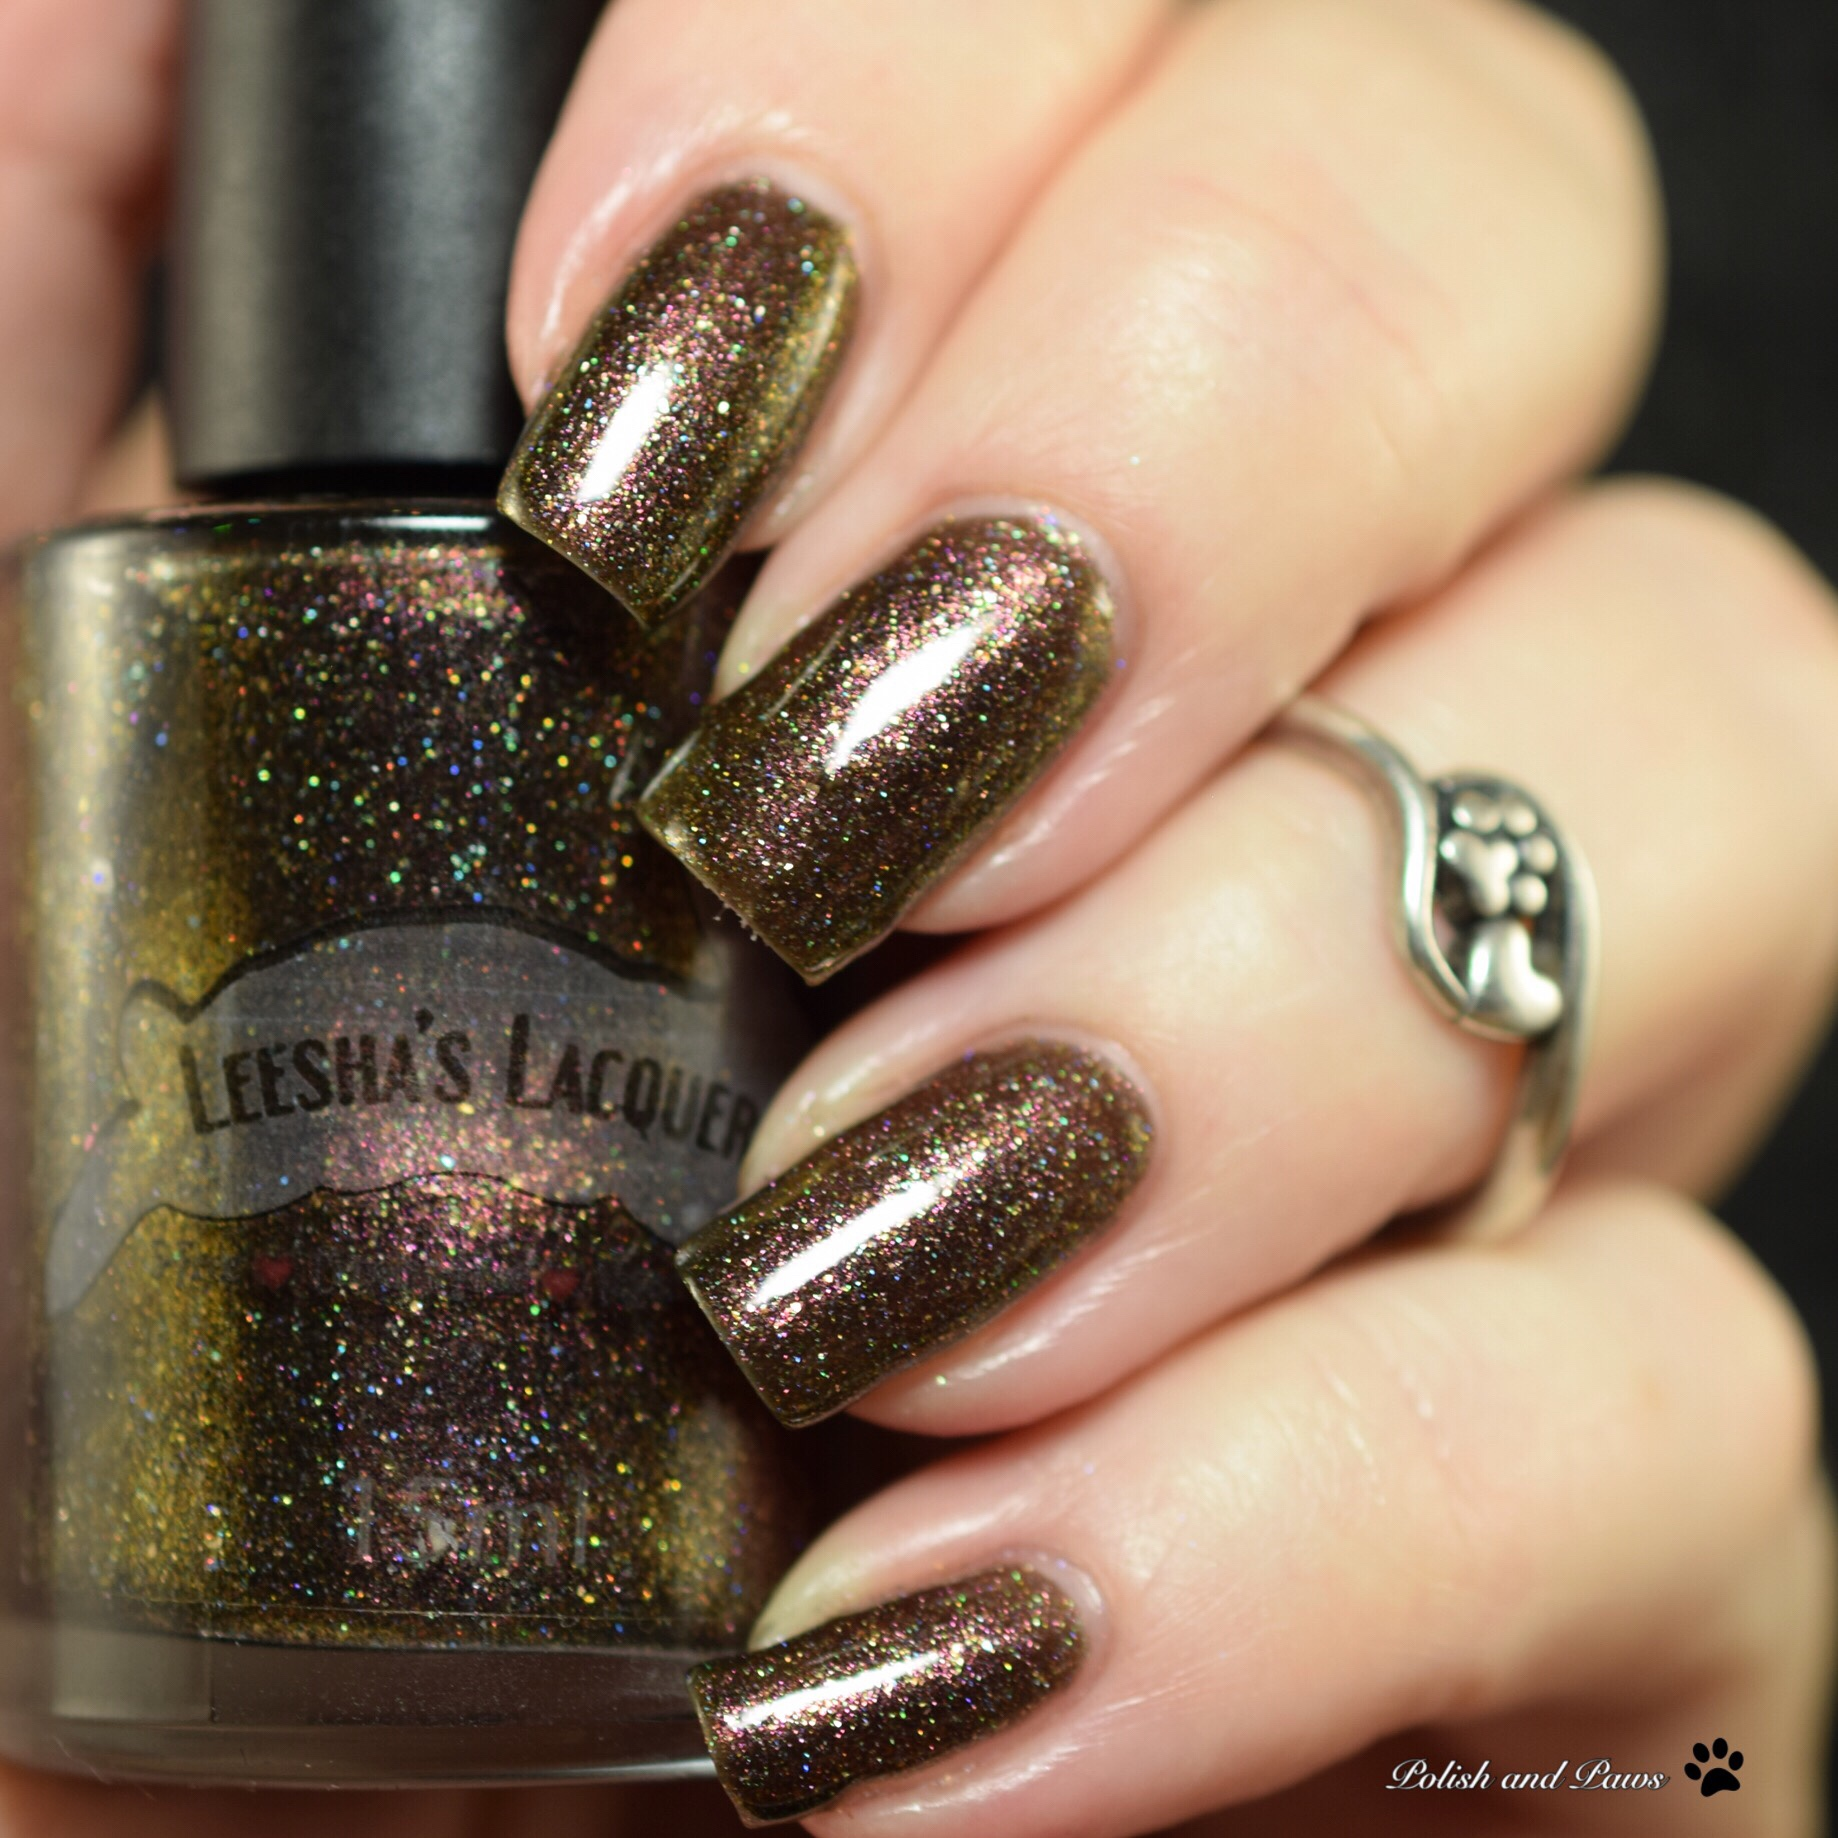 Leesha's Lacquer Tempter